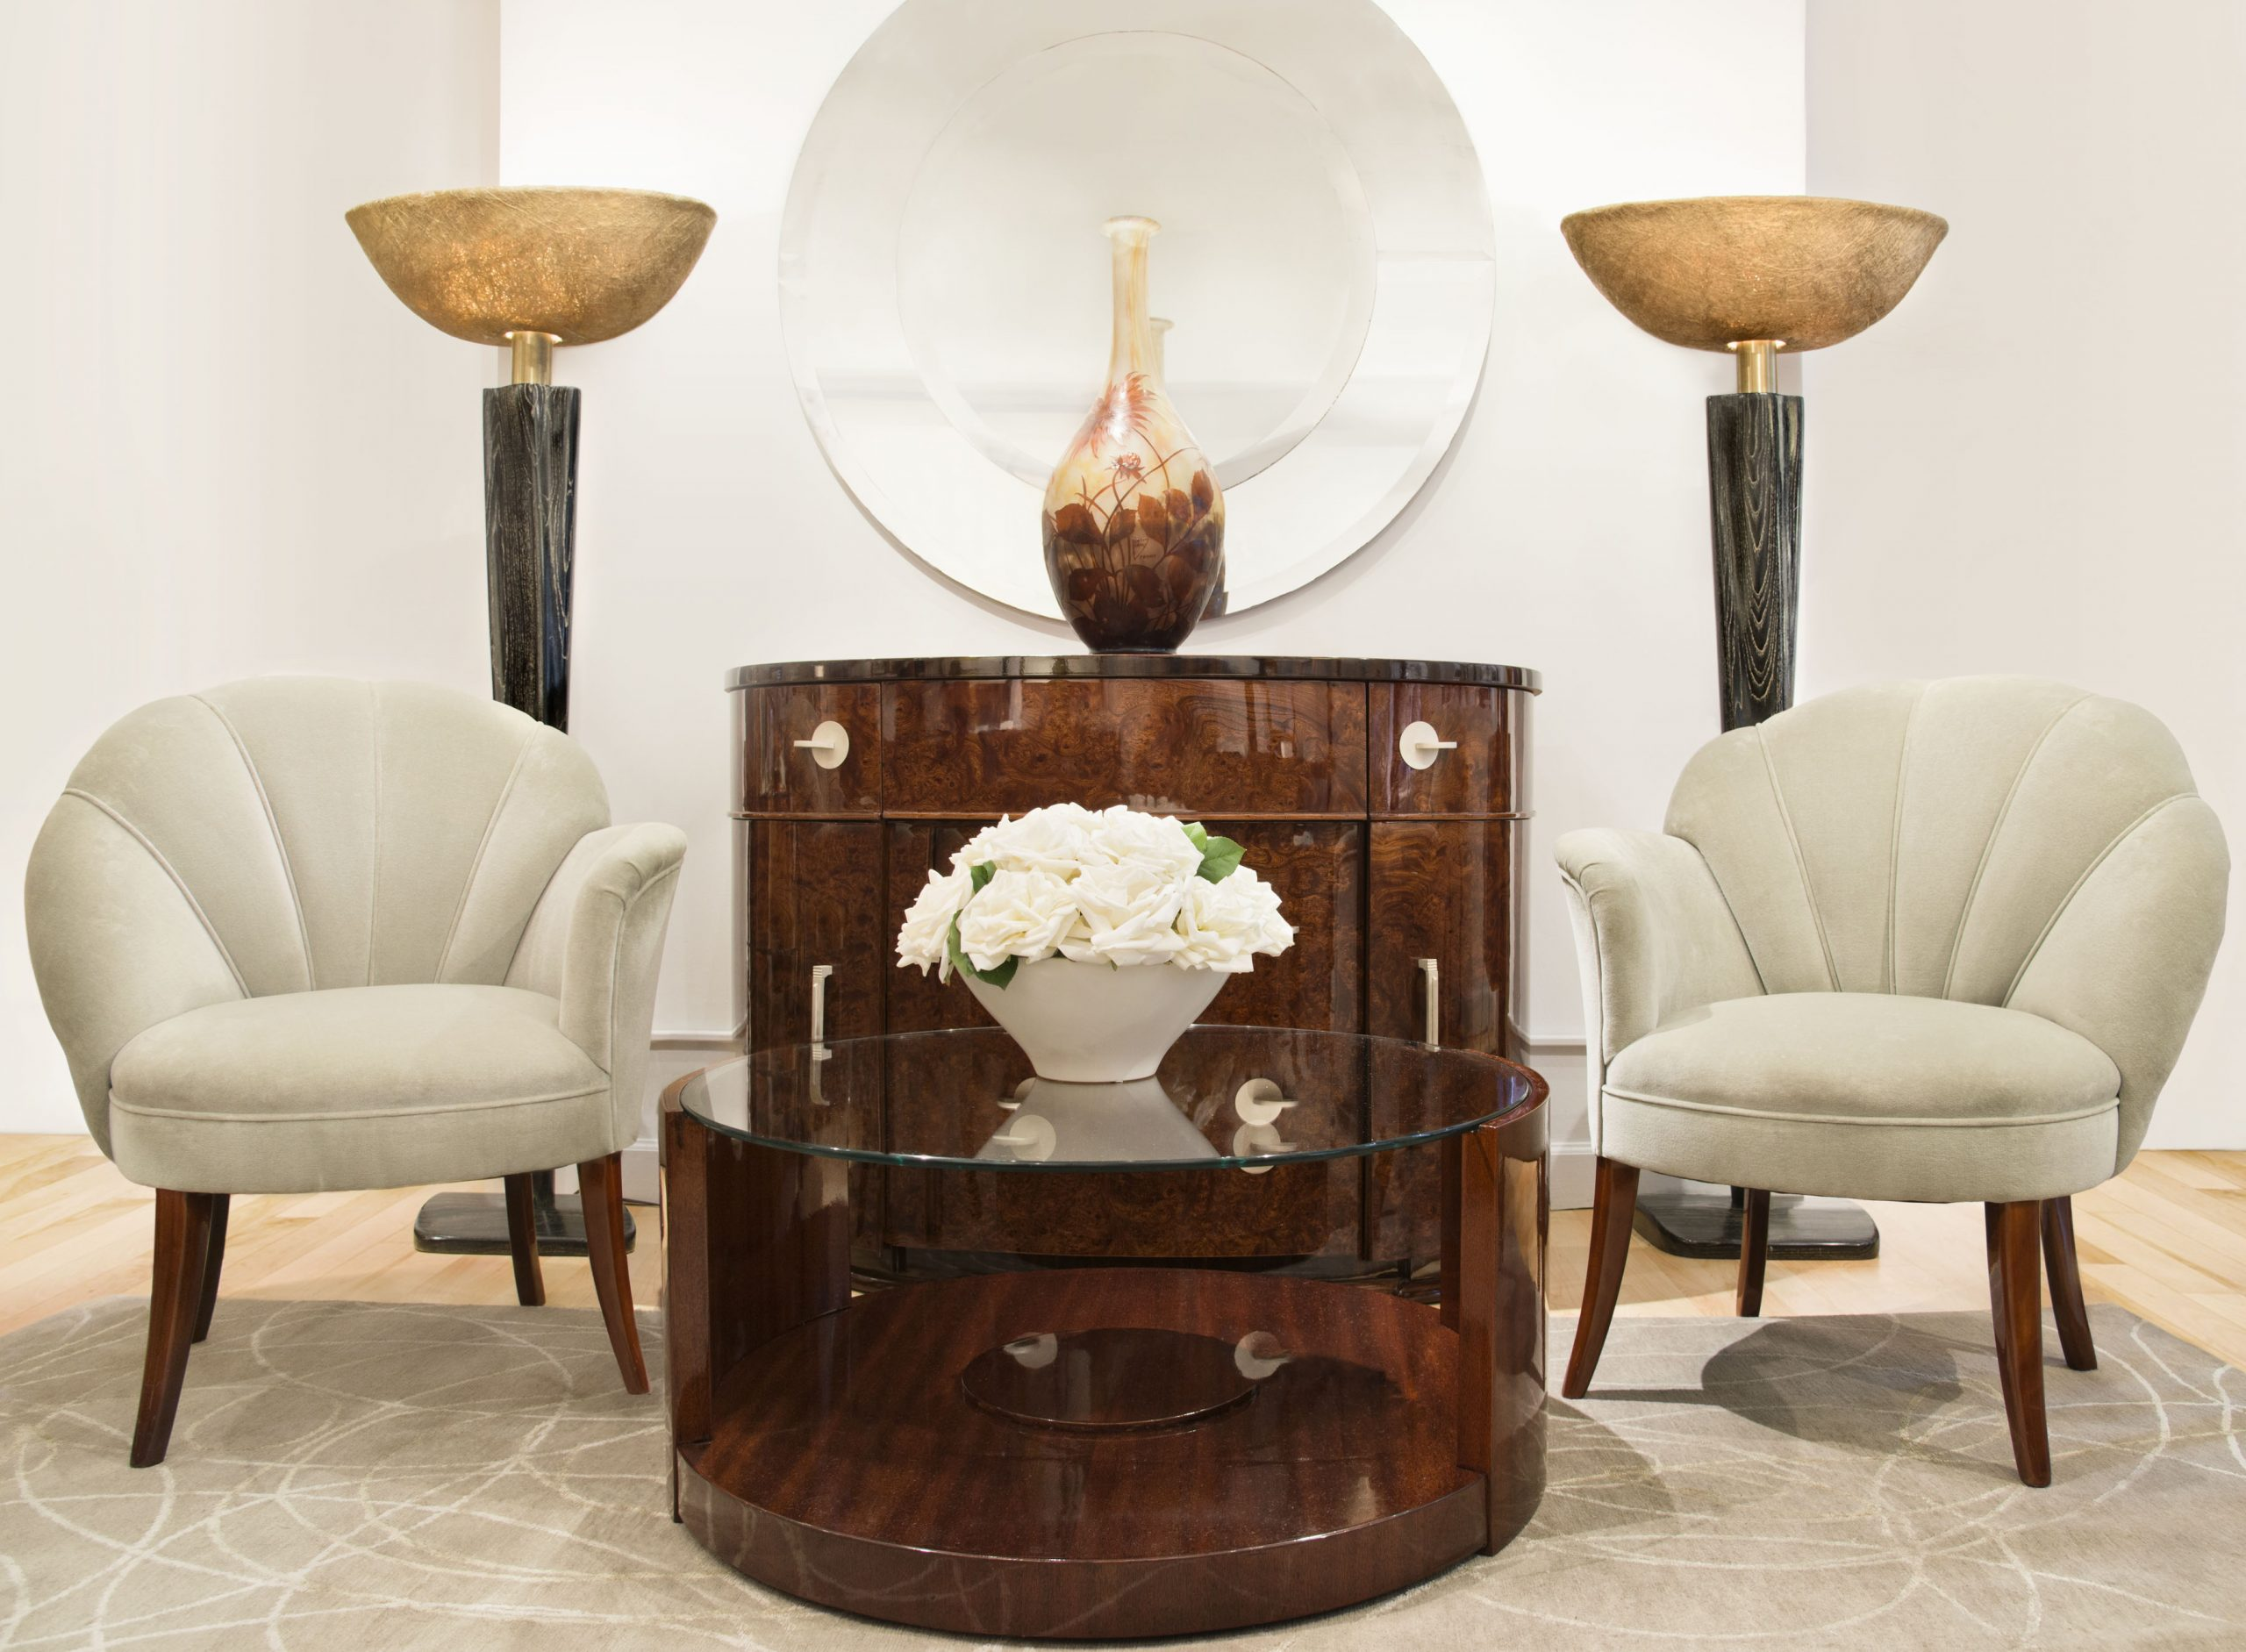 Antiques and Art Deco Pieces for the serious collector and true connoisseur